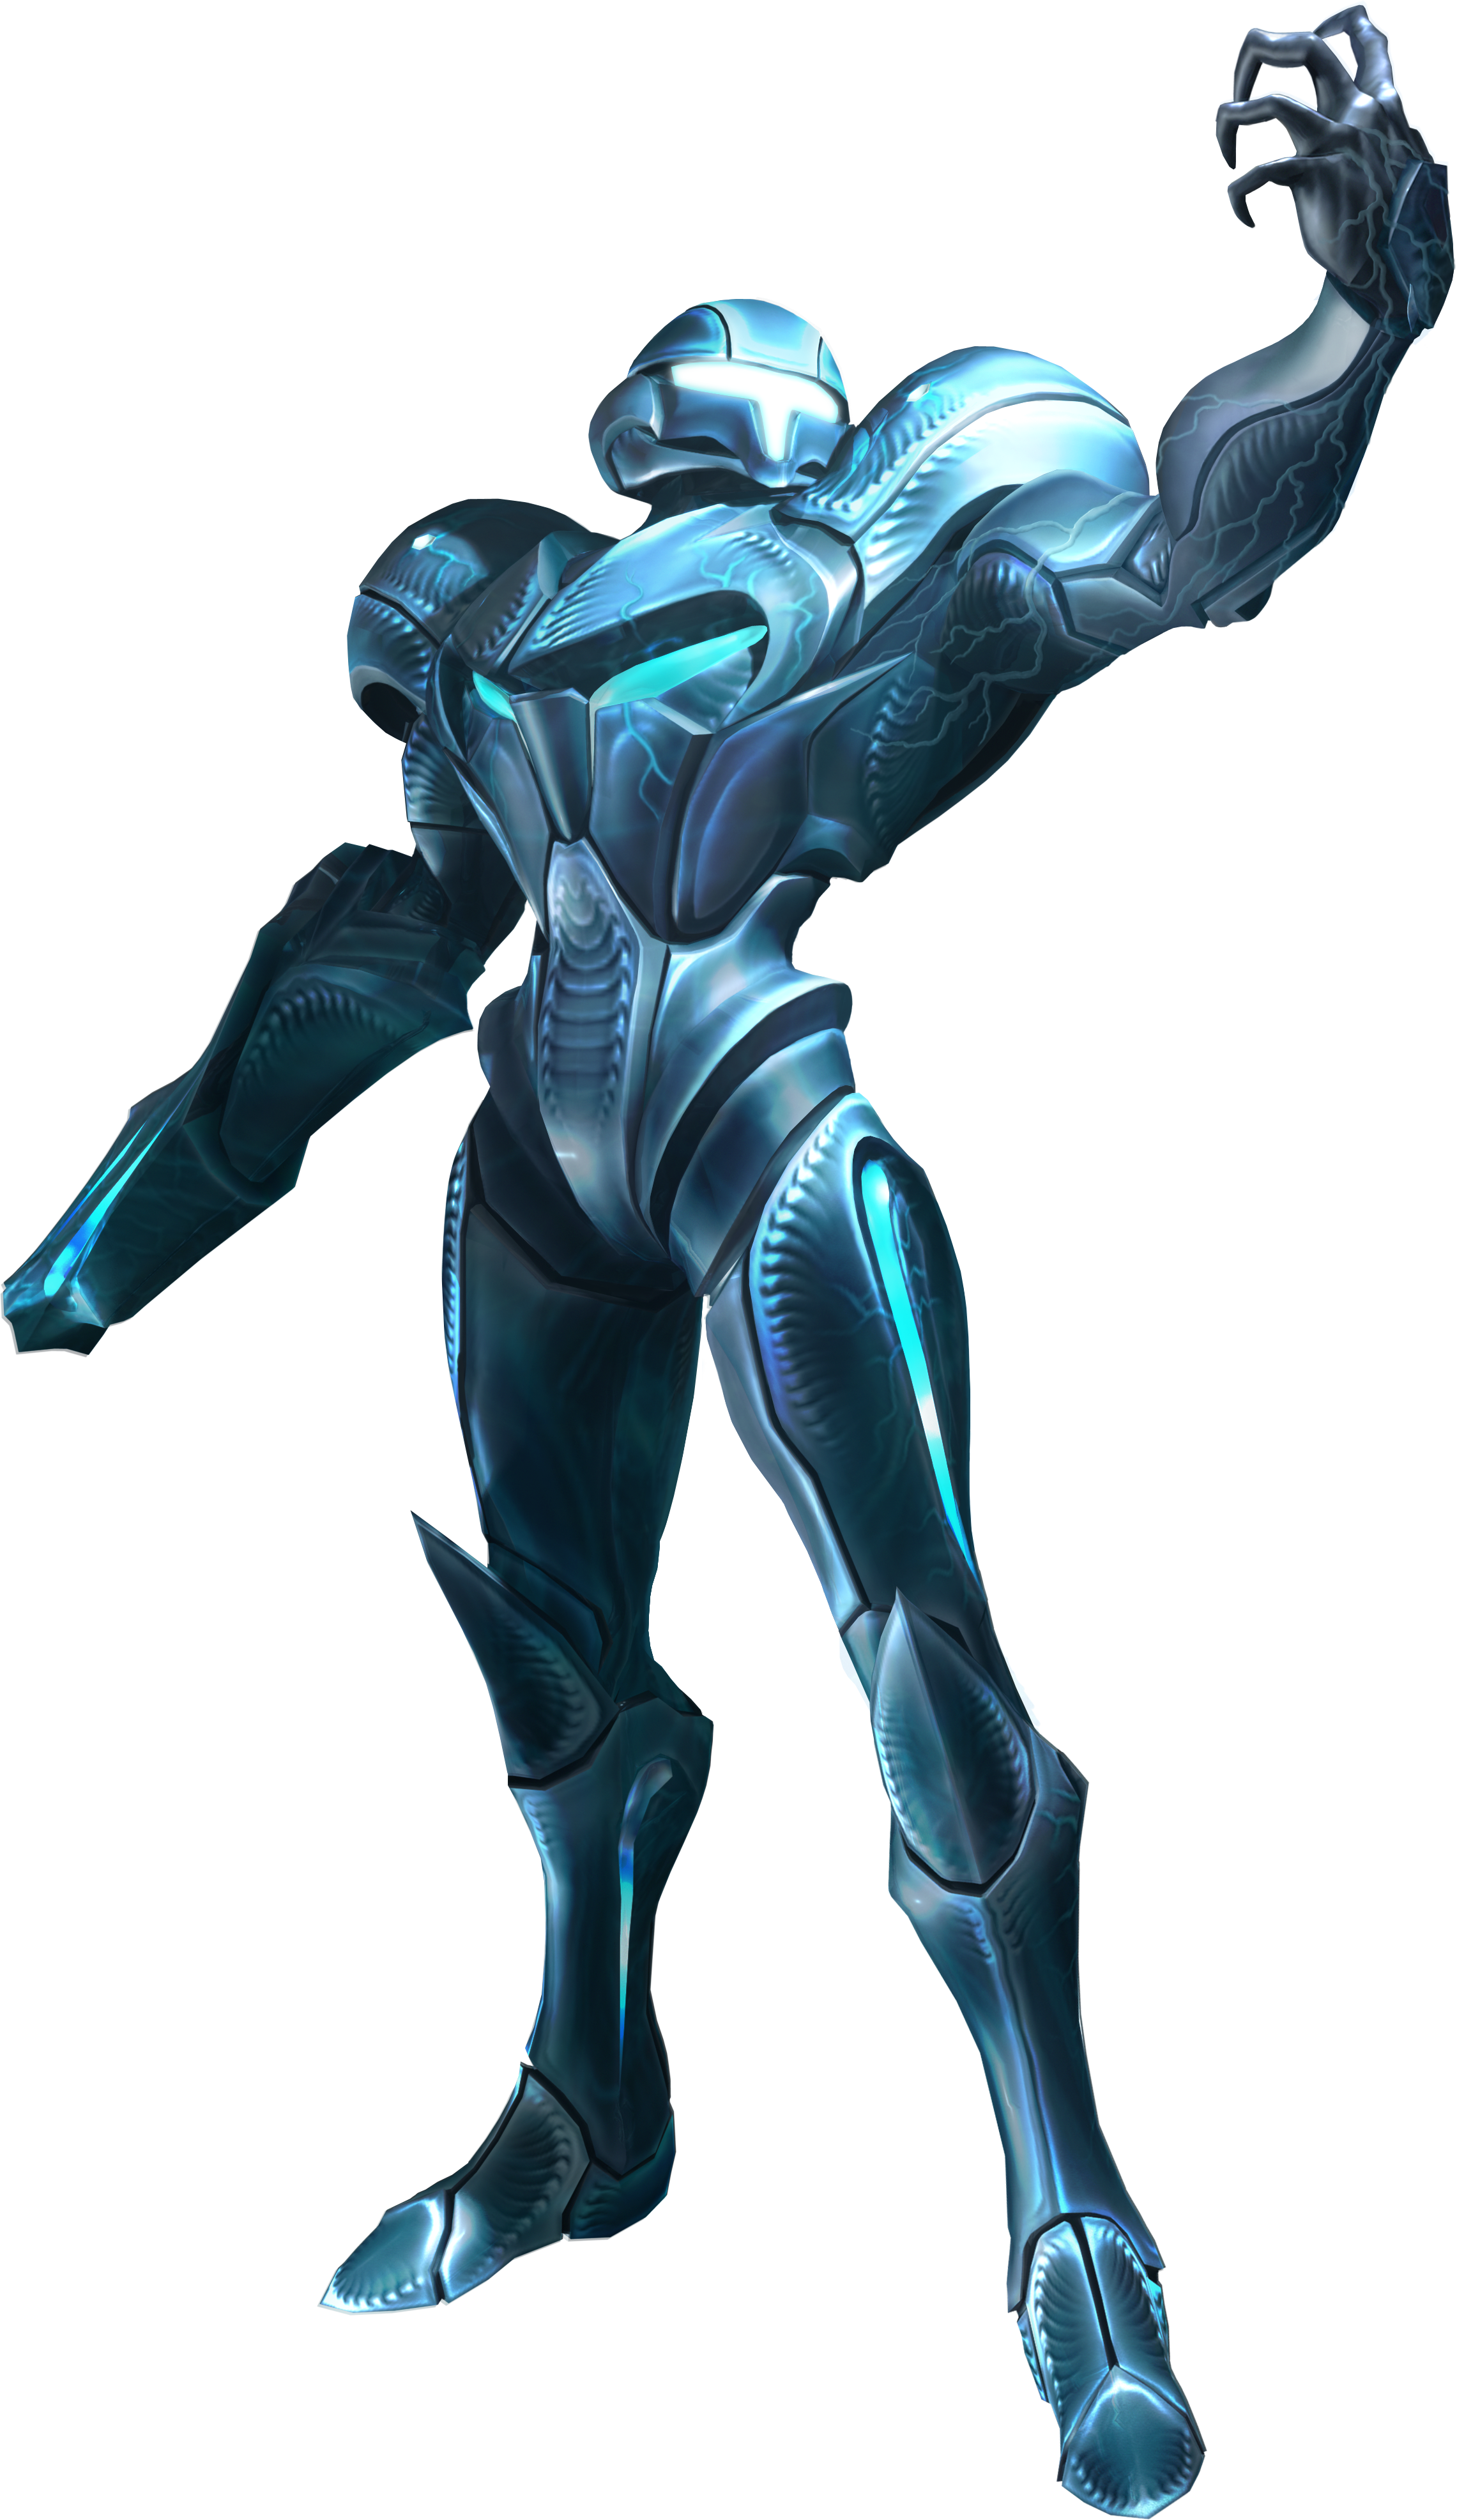 Dark Samus - High Resolution